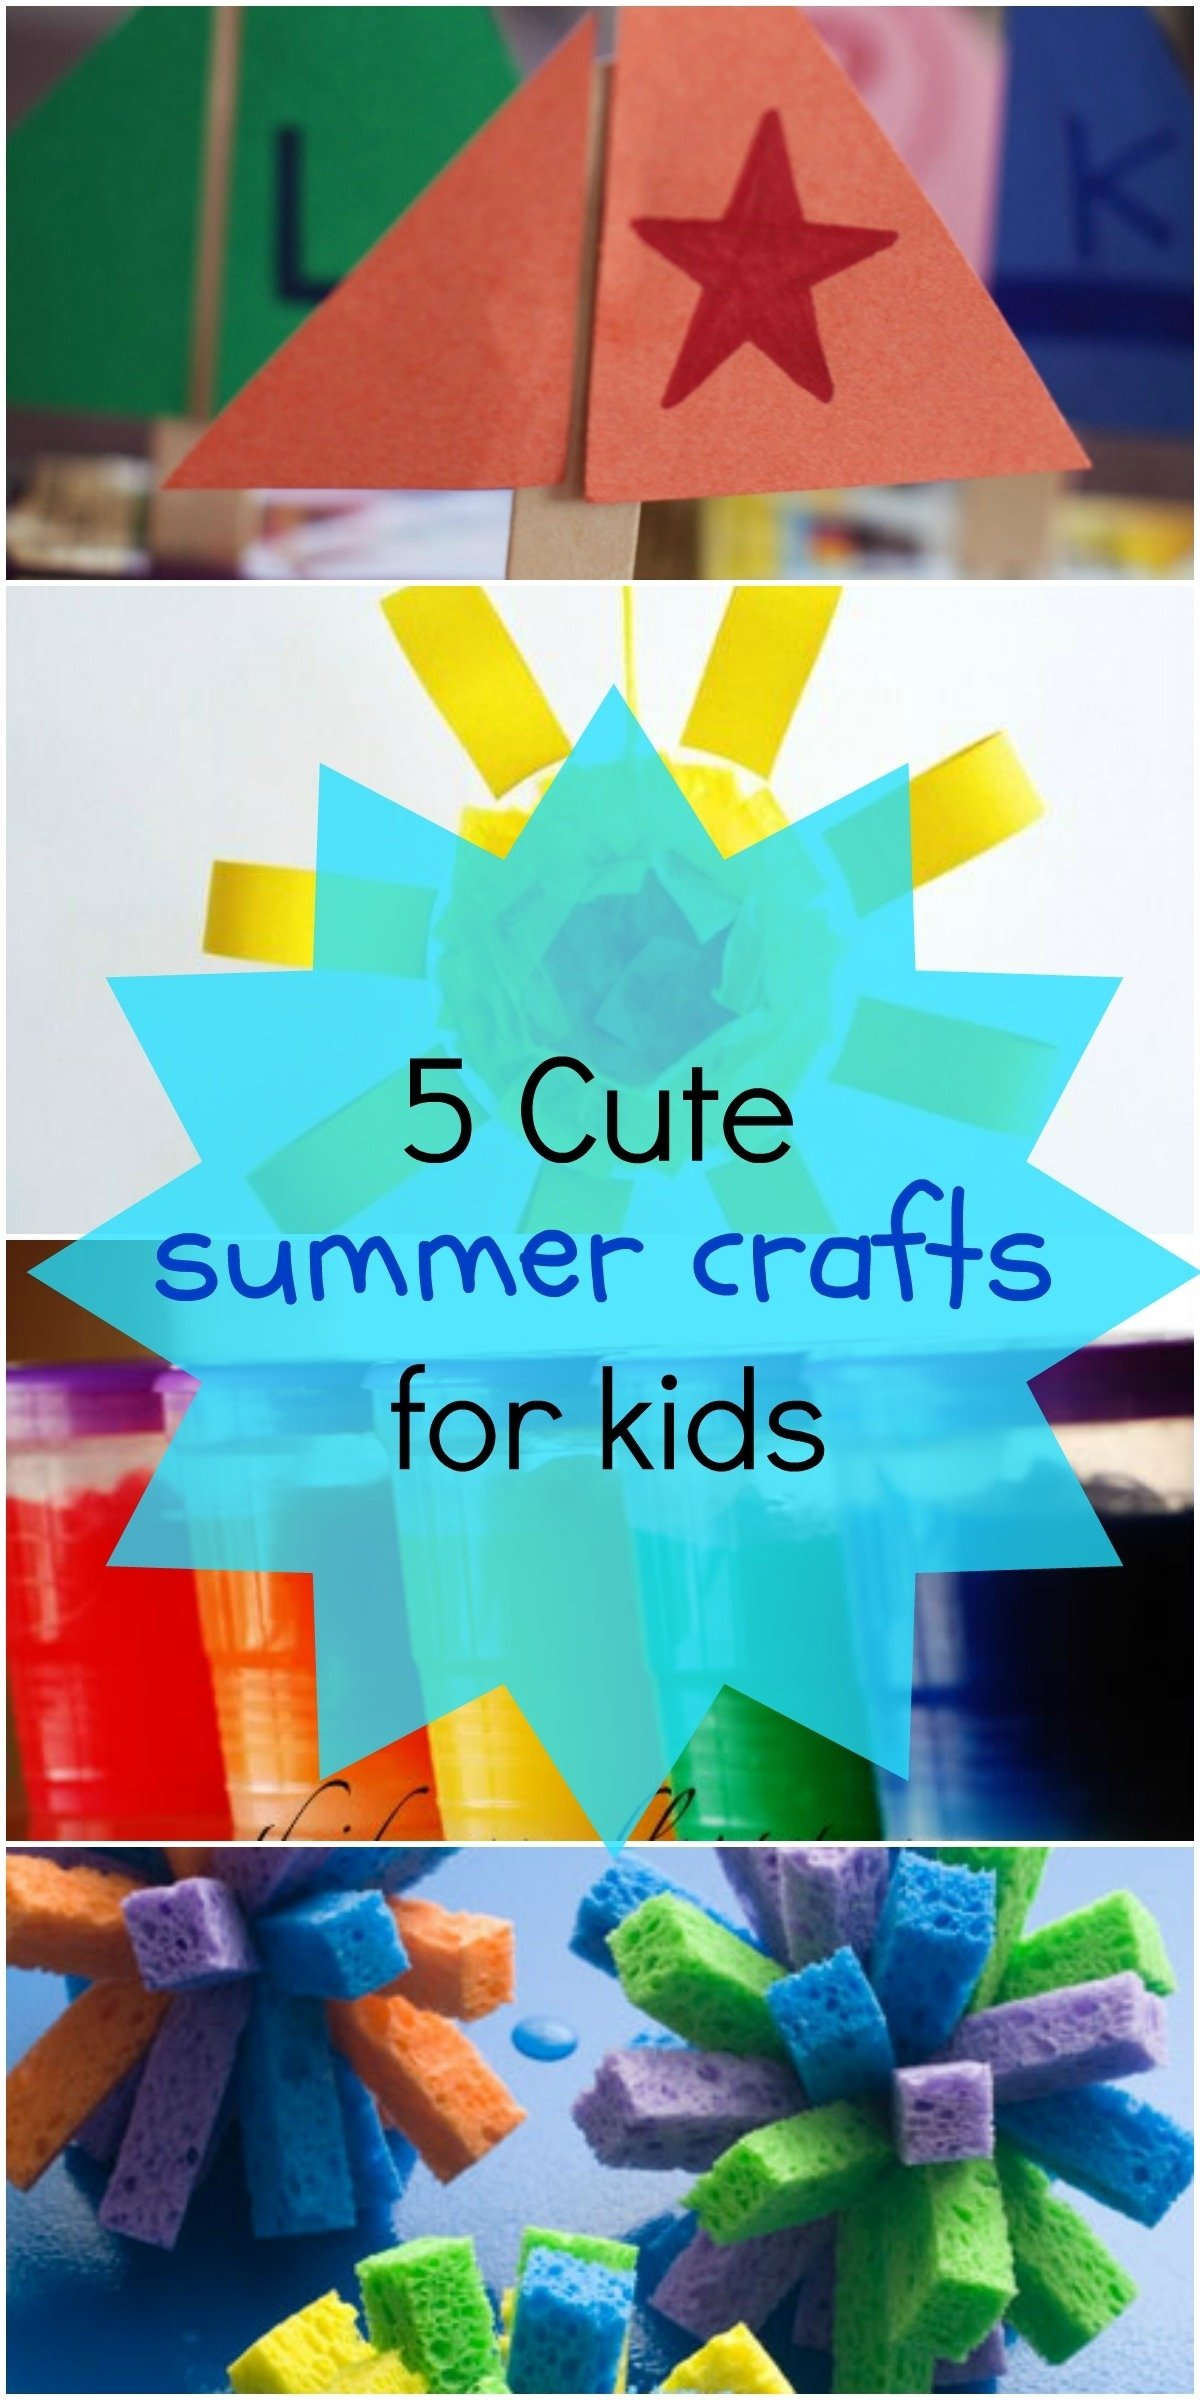 10 Lovable Arts And Crafts Ideas For Summer 5 fun summer crafts for kids love these art project ideas 2